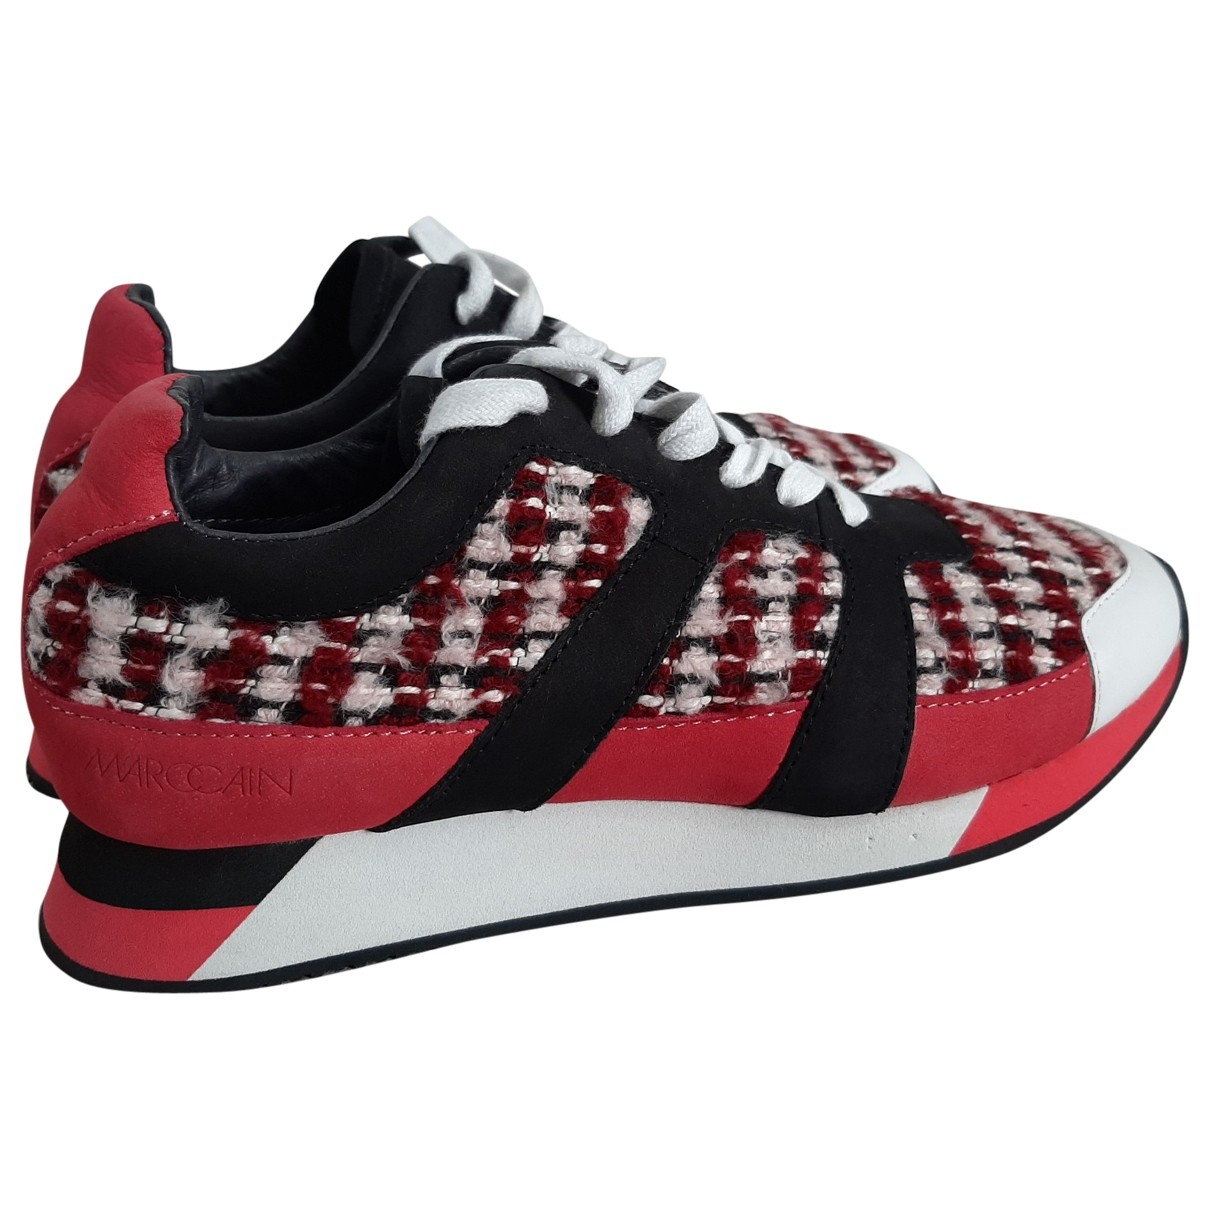 Marc Cain \N Red Leather Trainers for Women 39 EU